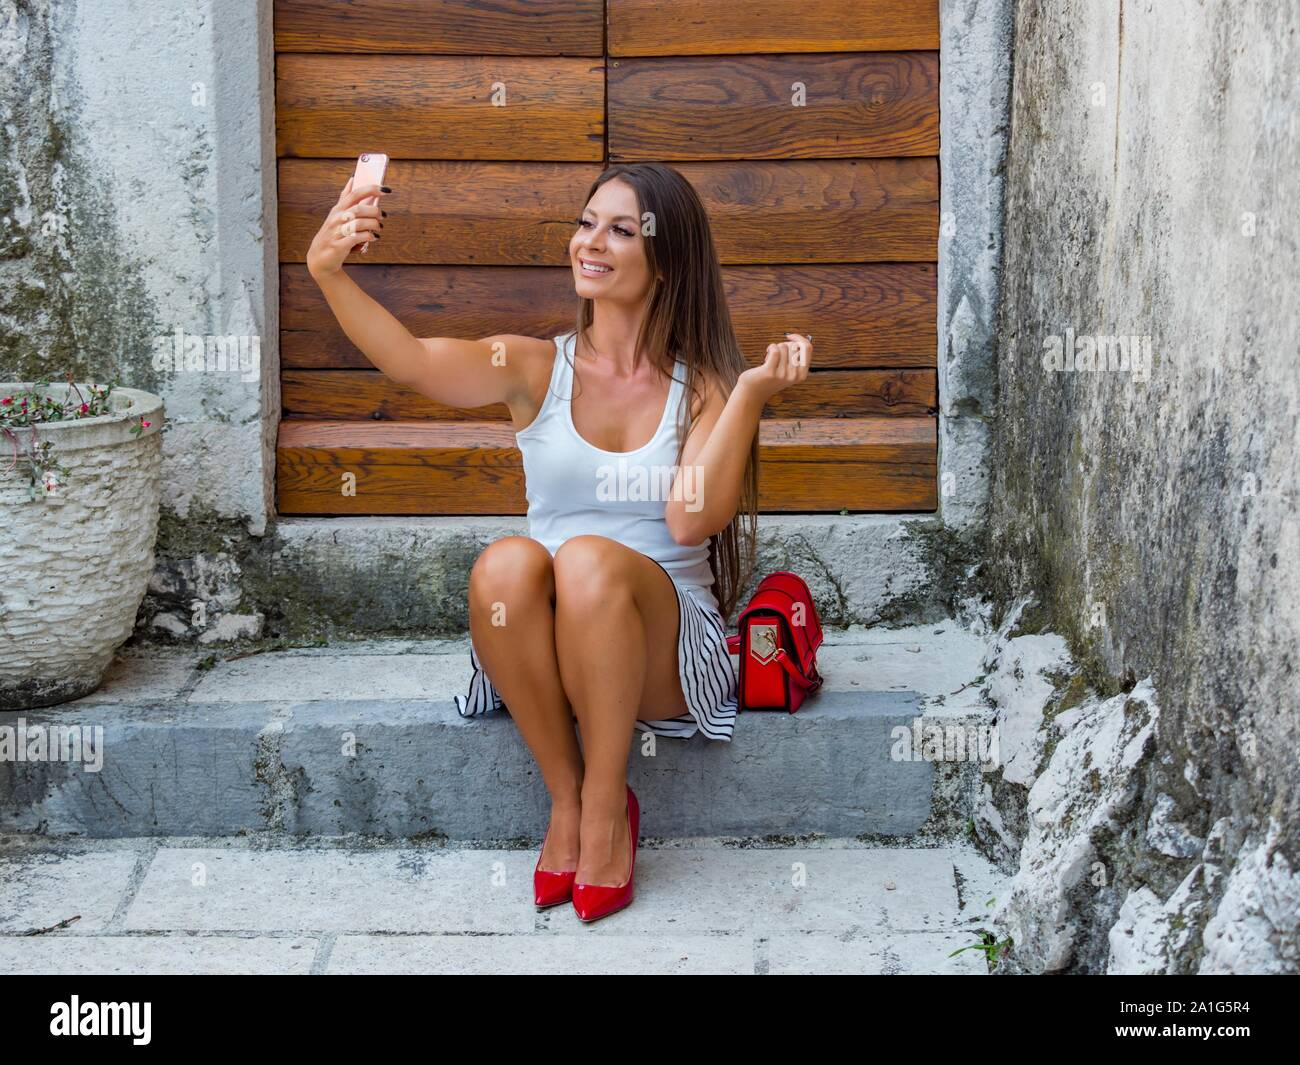 Female legs in heels looking up into camera cellphone sitting on entrance porch doorstep before wooden doors door color horizontal highheels Stock Photo